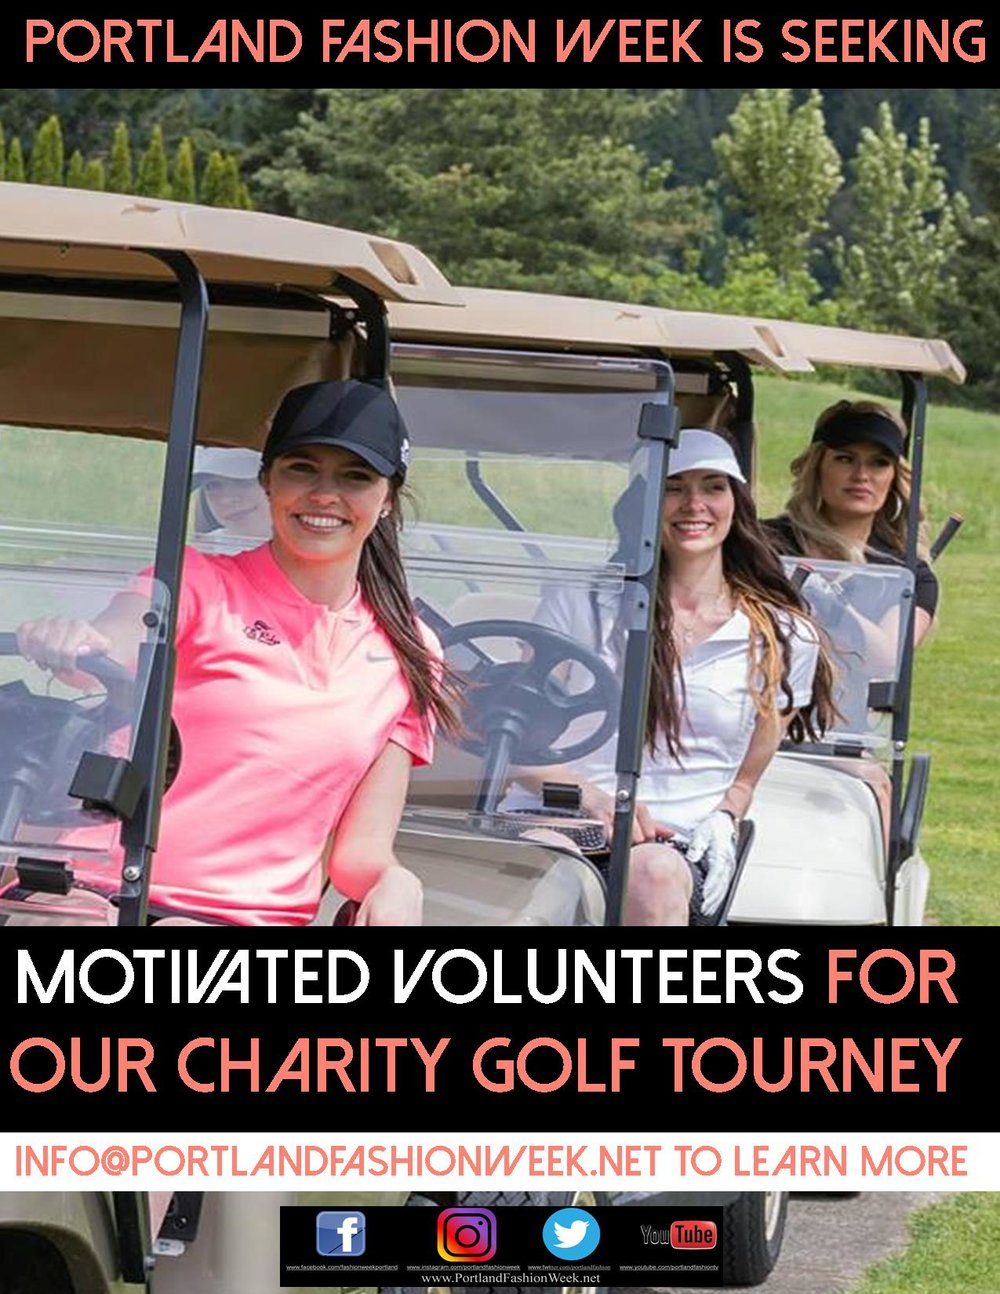 "Four! - Portland Fashion Week is seeking a few top notch volunteers to help with our 3rd Annual Charity Golf Tourney July 27, 2019 from the beautiful Elk Ridge Golf Course in Carson, WA.!Dinner, drinks, dancing and golf provided for our support teams and our ""All You Can Eat Bloody Mary Bar"" is purely decadent!Since 2017 we have featured over $125,000.00 in cash and prizes, including a fully restored 1957 Jaguar XK 12 and thousands in cash bounties on holes in one!Info@PortlandFashionWeek.net to learn more!"